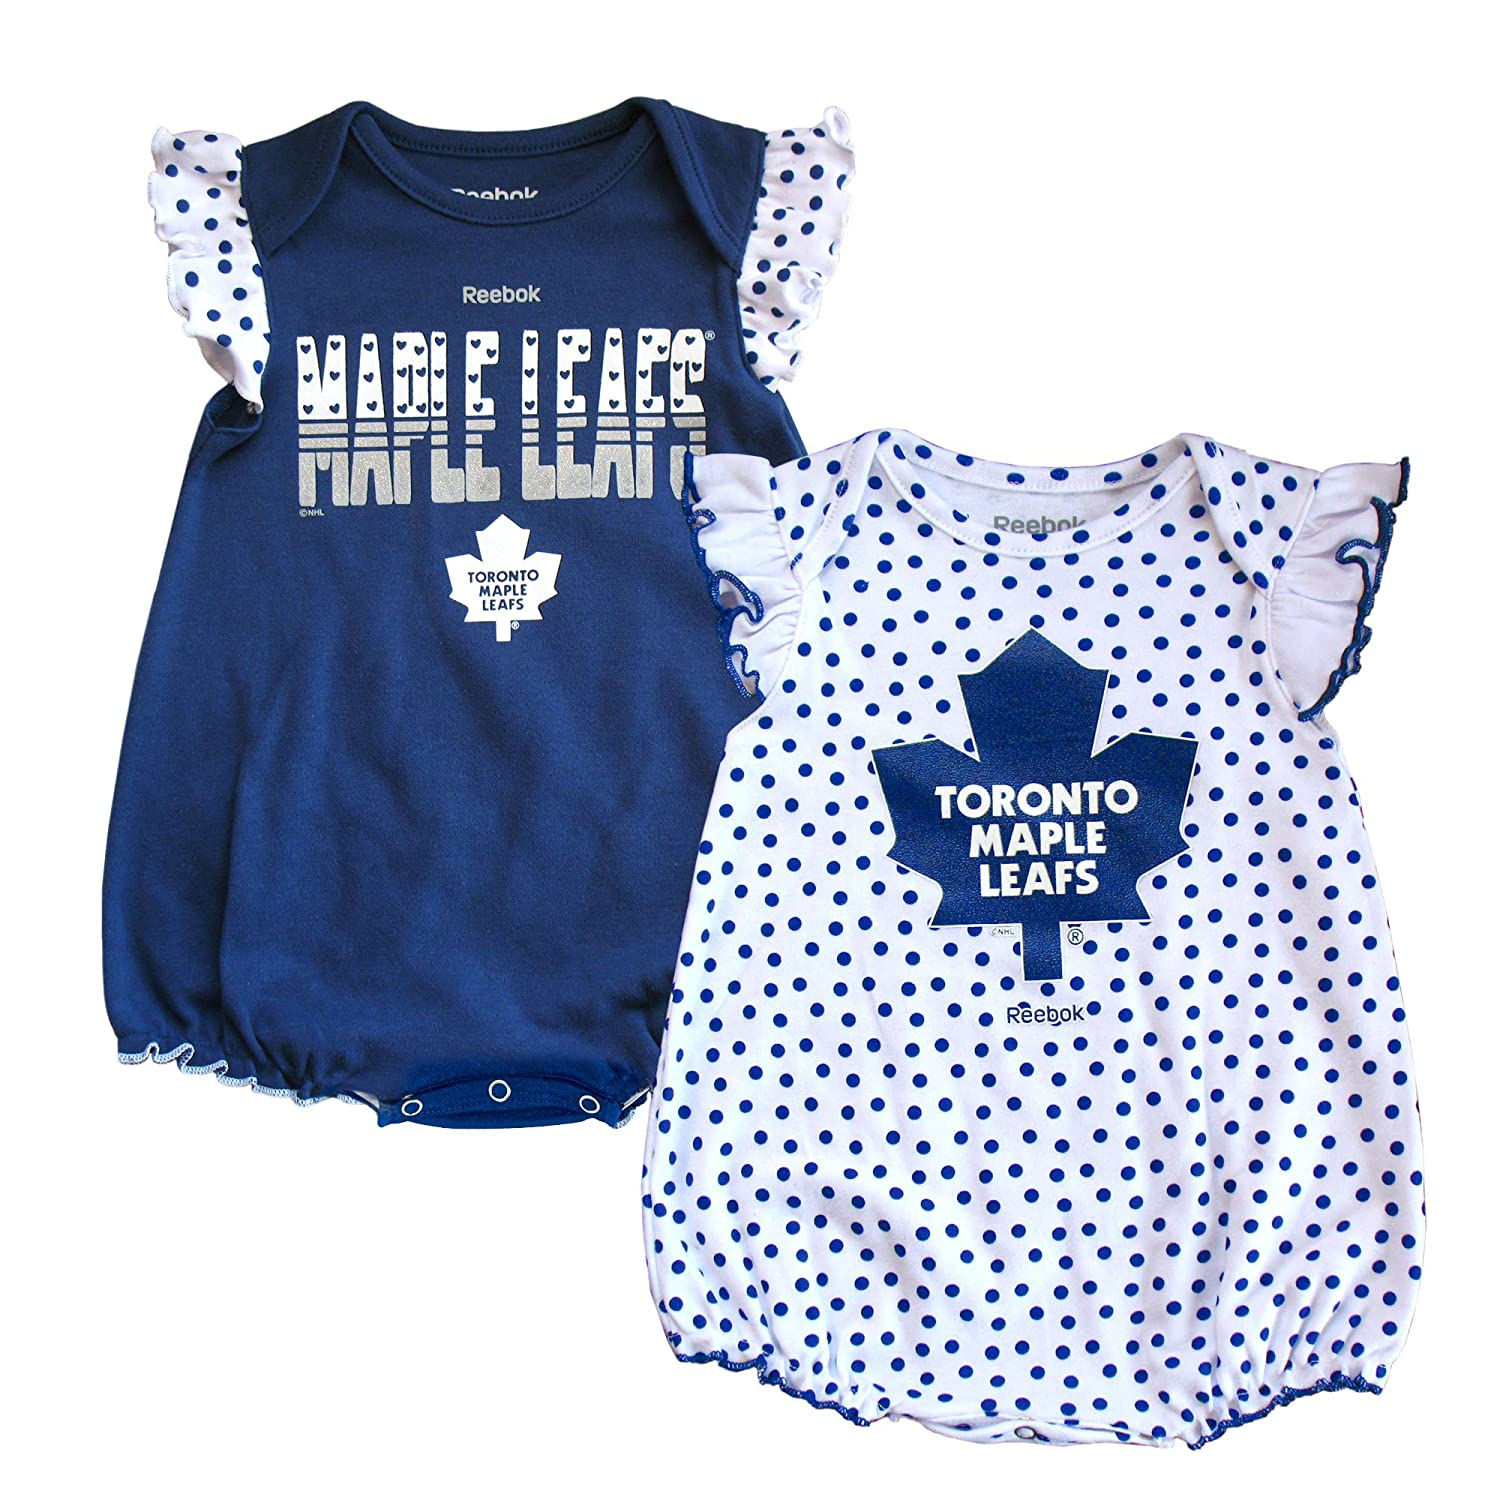 Toronto's local collection of baby store's offer products and services you can't find at places like Walmart, Baby Gap and Babies